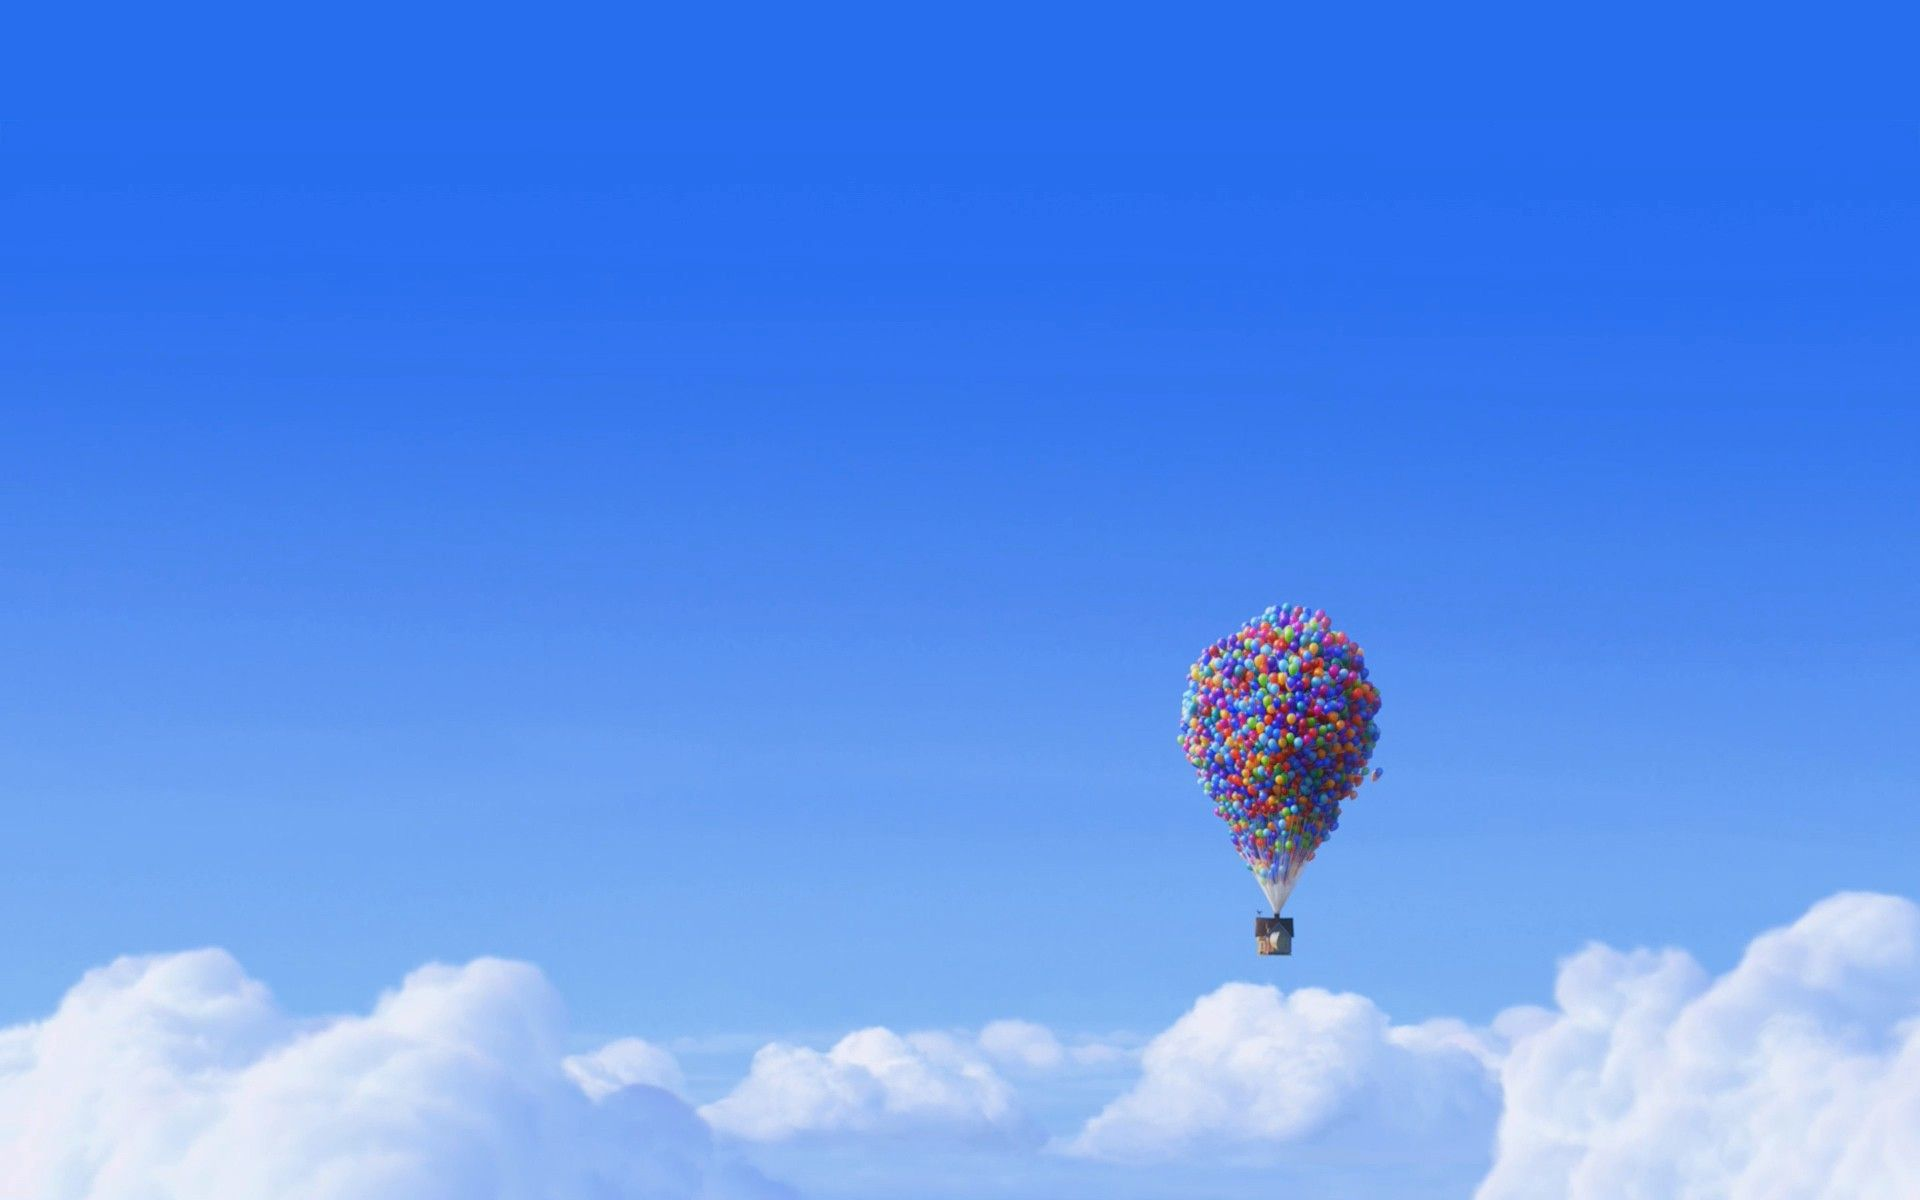 Disney Pixar Up Wallpaper